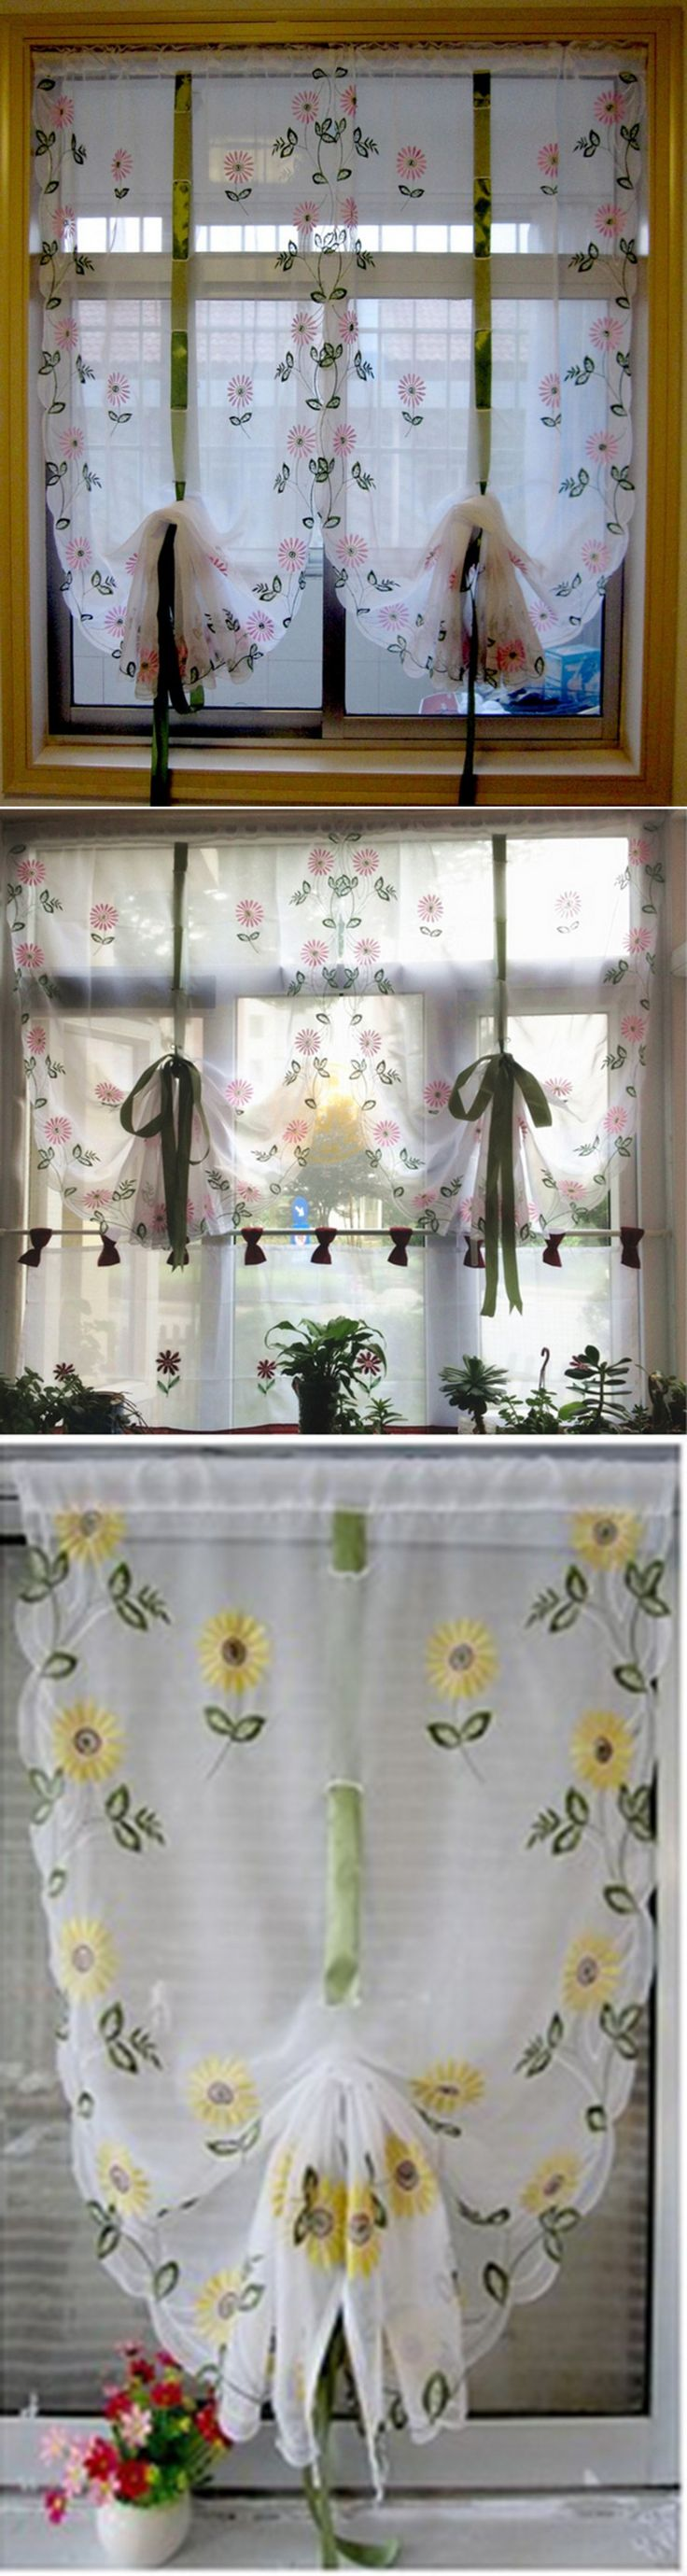 Balloon curtains kitchen - 2016 New Embroidery Daisy Rustic Window Screening Balloon Curtain Roman Lifting Tulle Voile Curtains The Finished Product